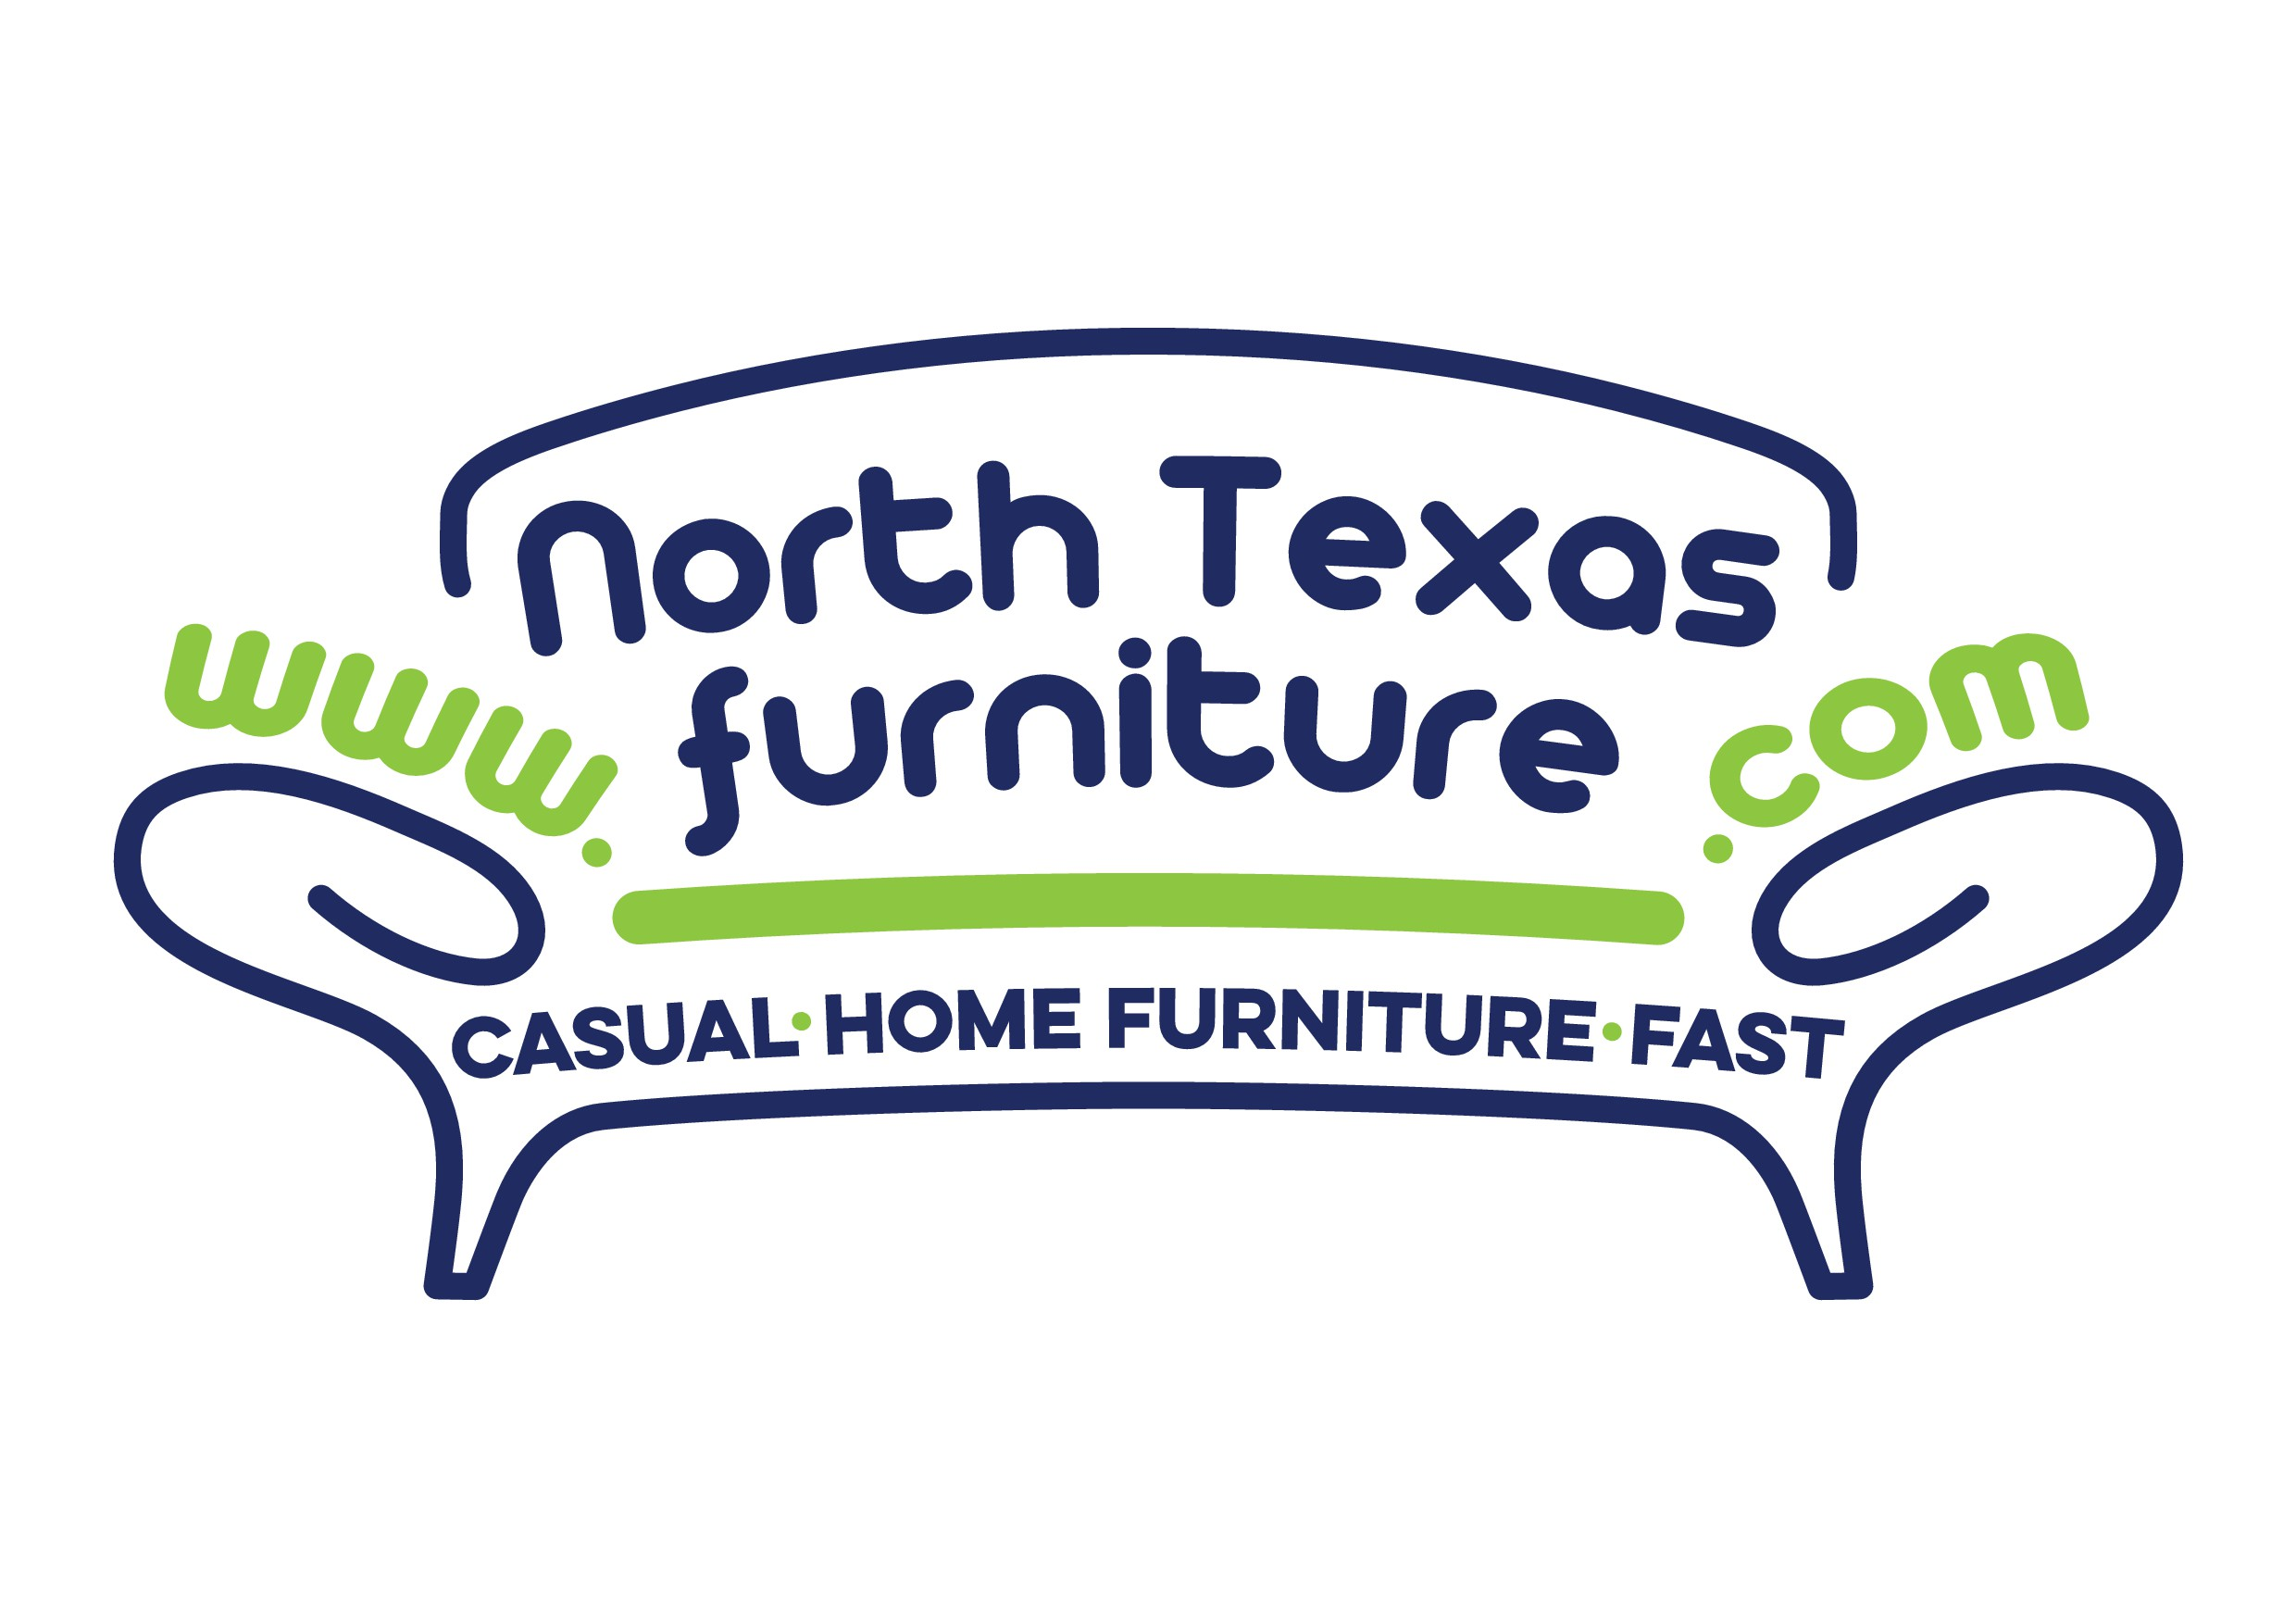 Hispanic Family owned furniture store needs your help!